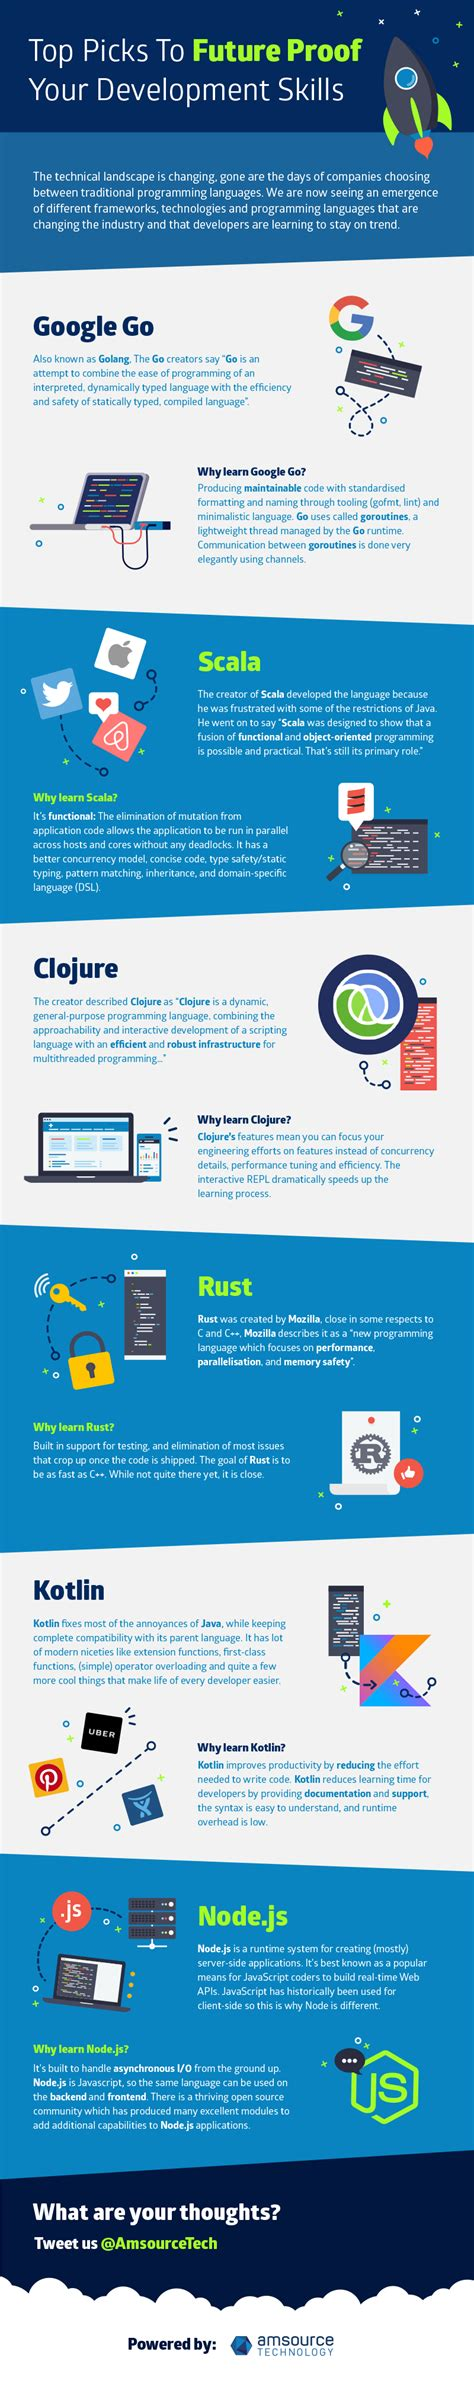 Infographic: Futureproofing Your Programming Skills